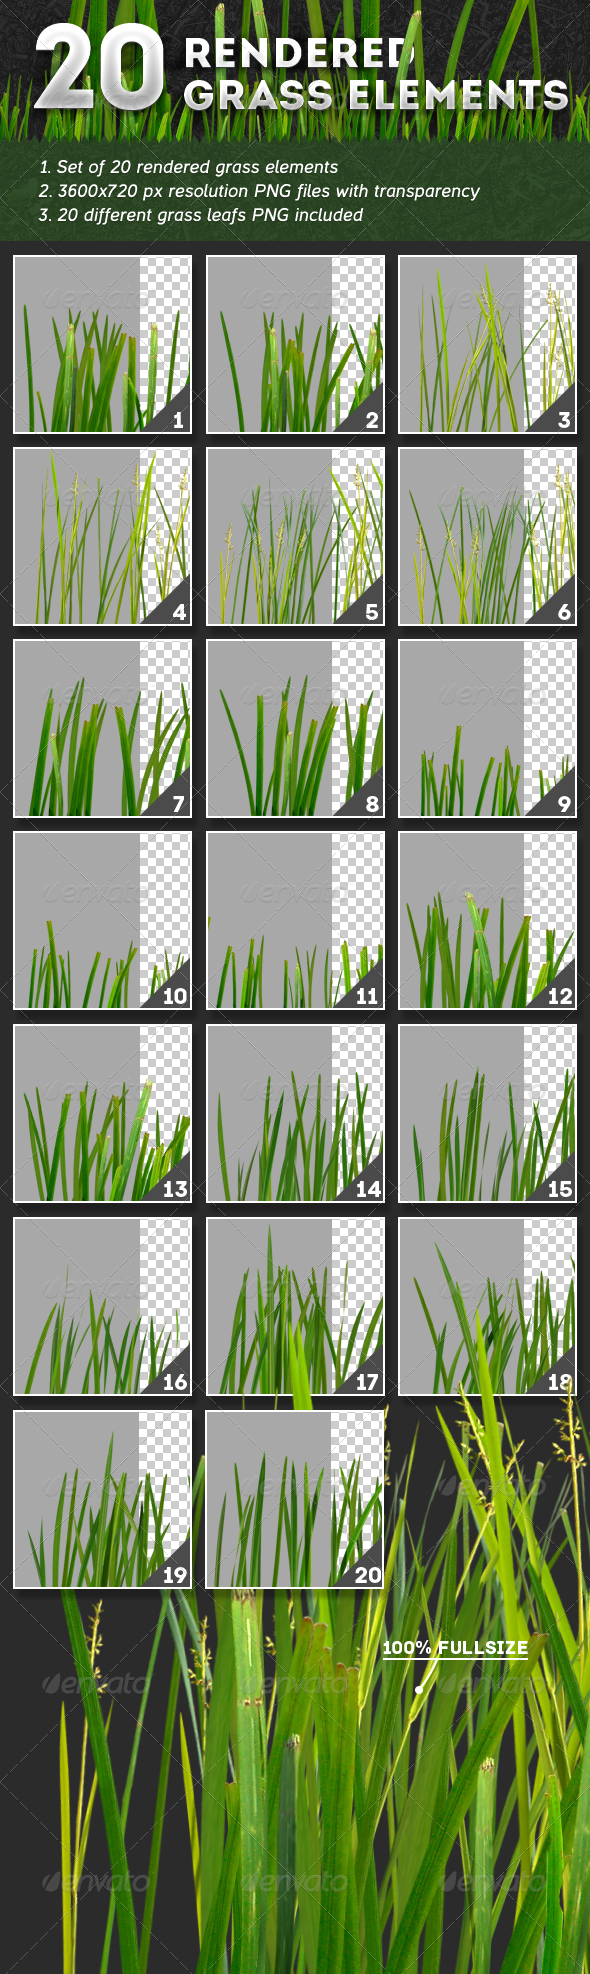 GraphicRiver 20 Rendered Grass Elements 4878485